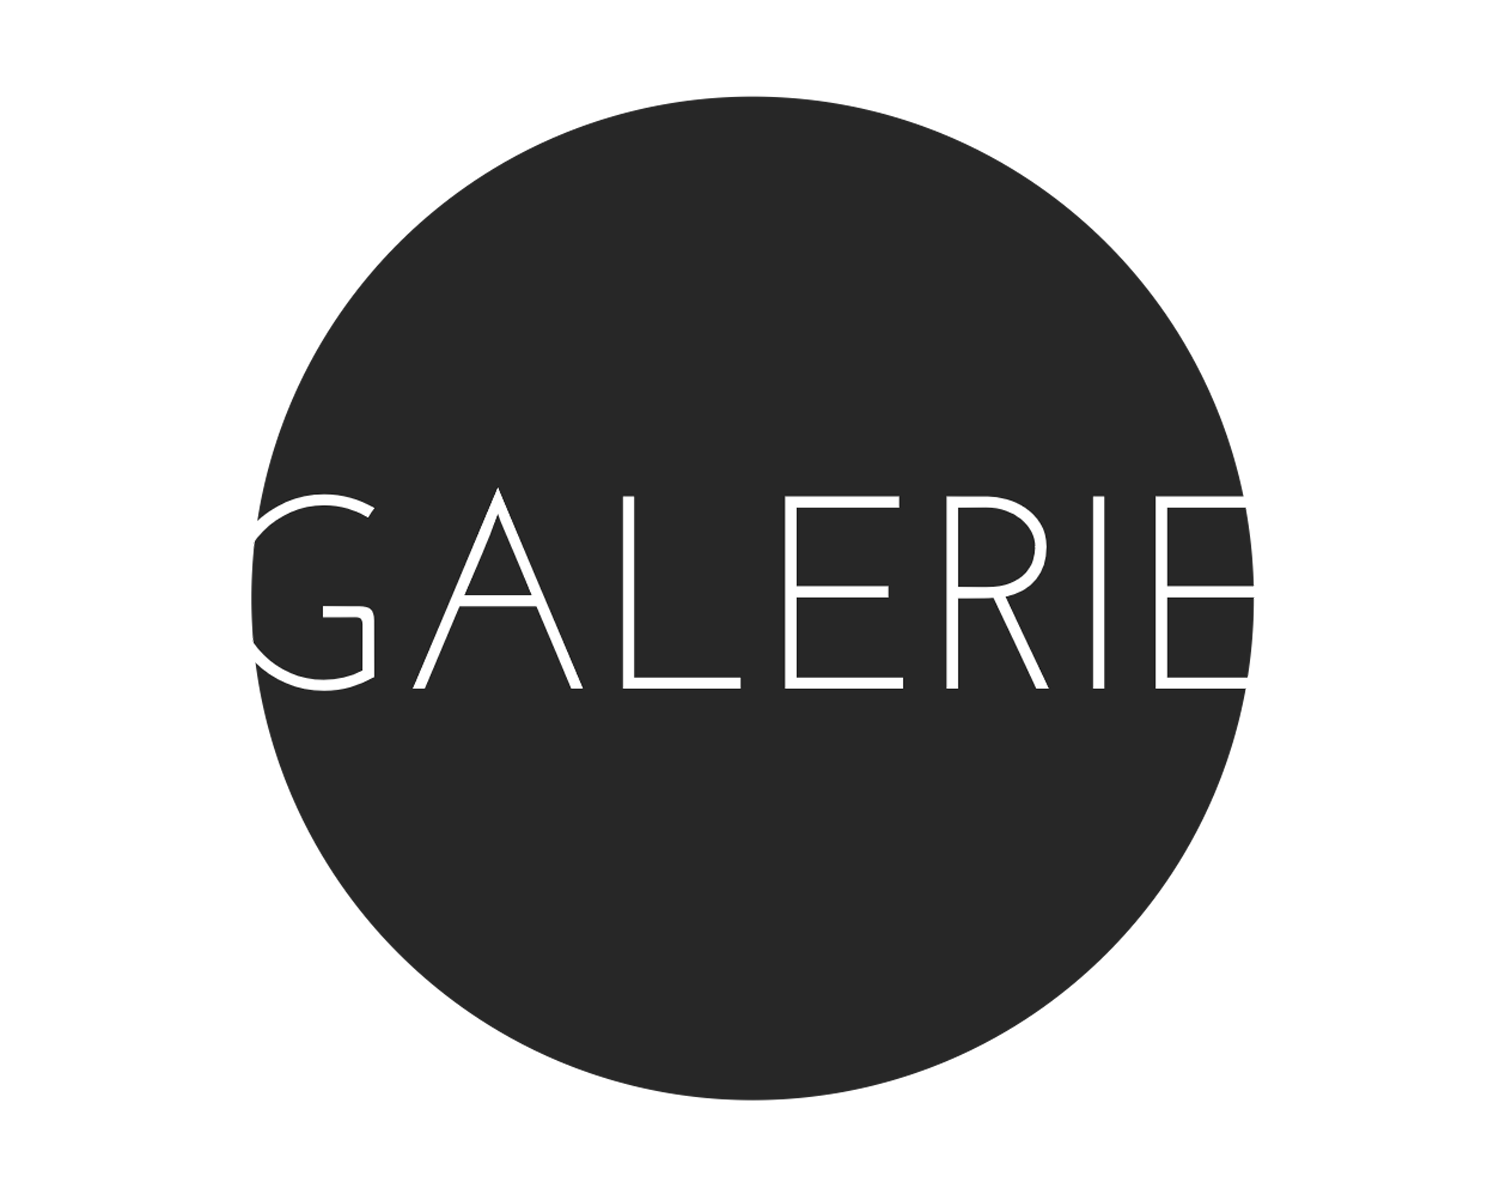 galerie 1 blog icon.png